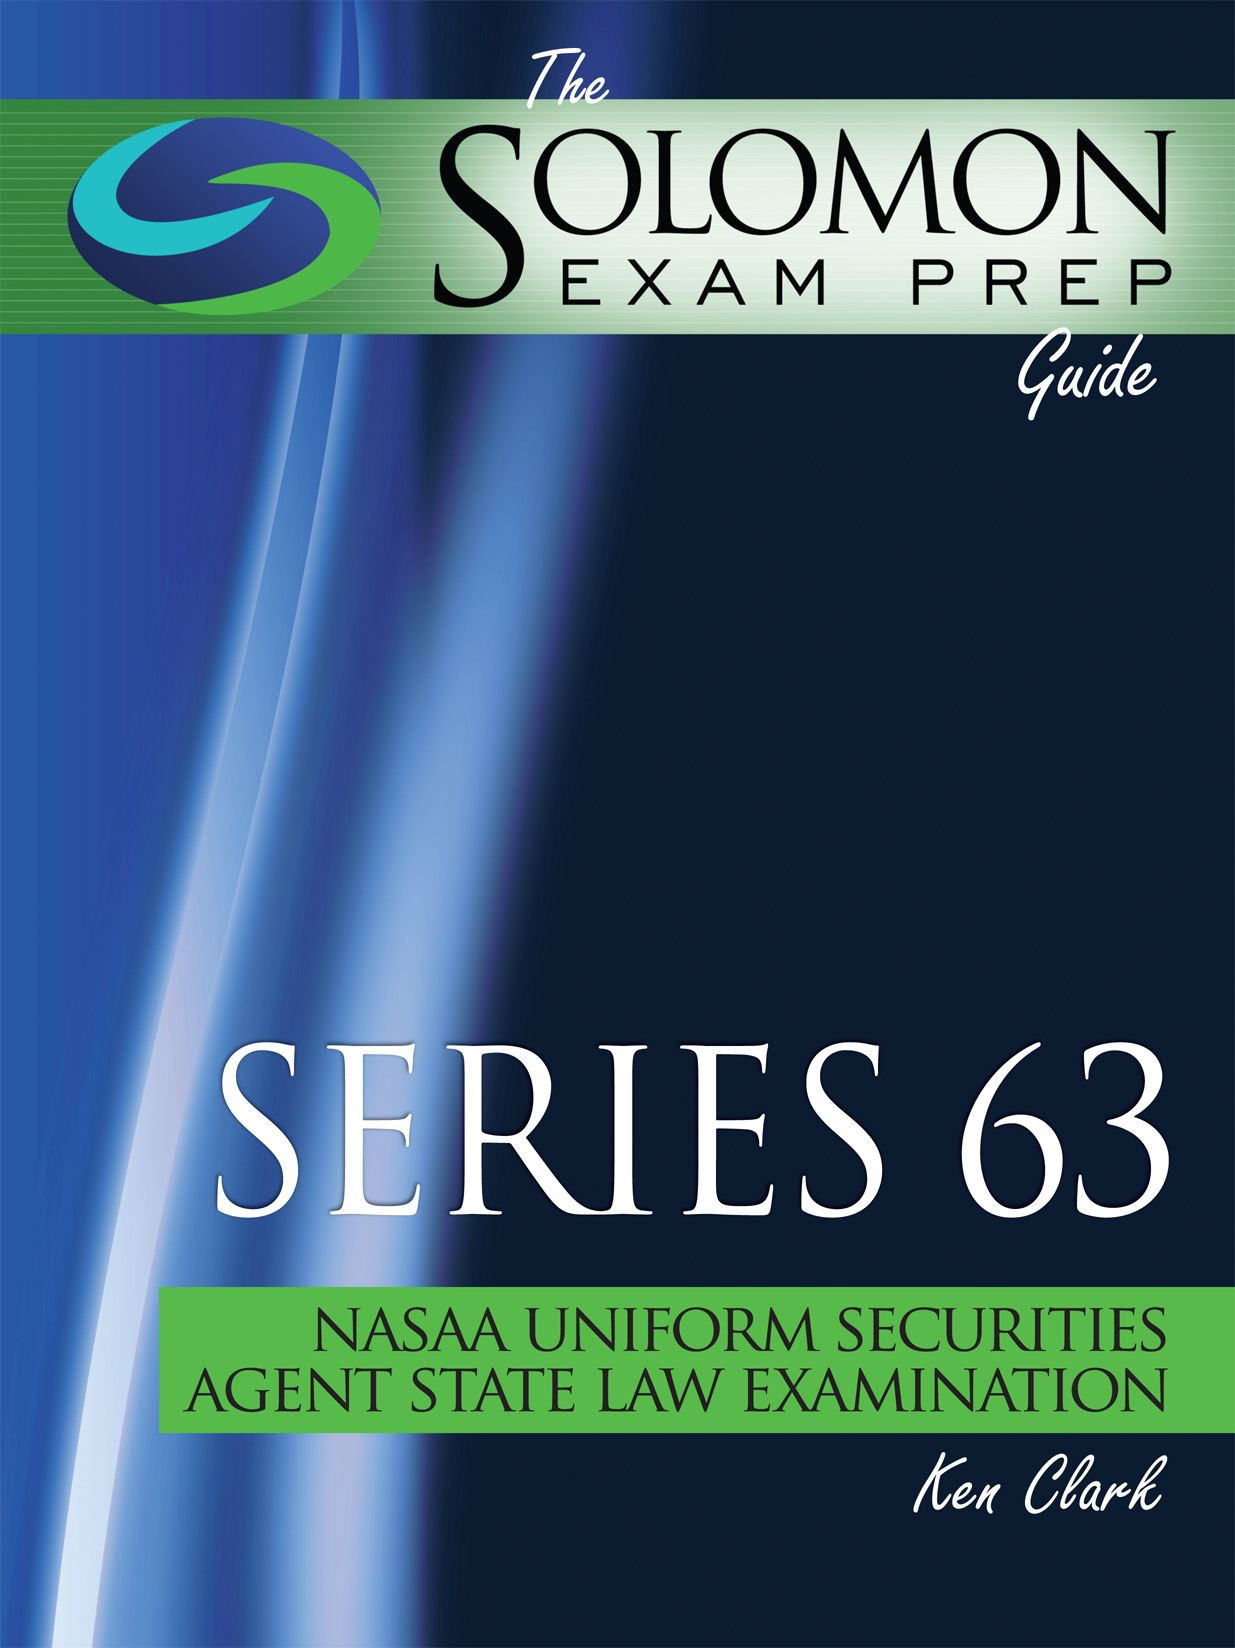 Series 63 NASAA Uniform Securities Agent Law Examination